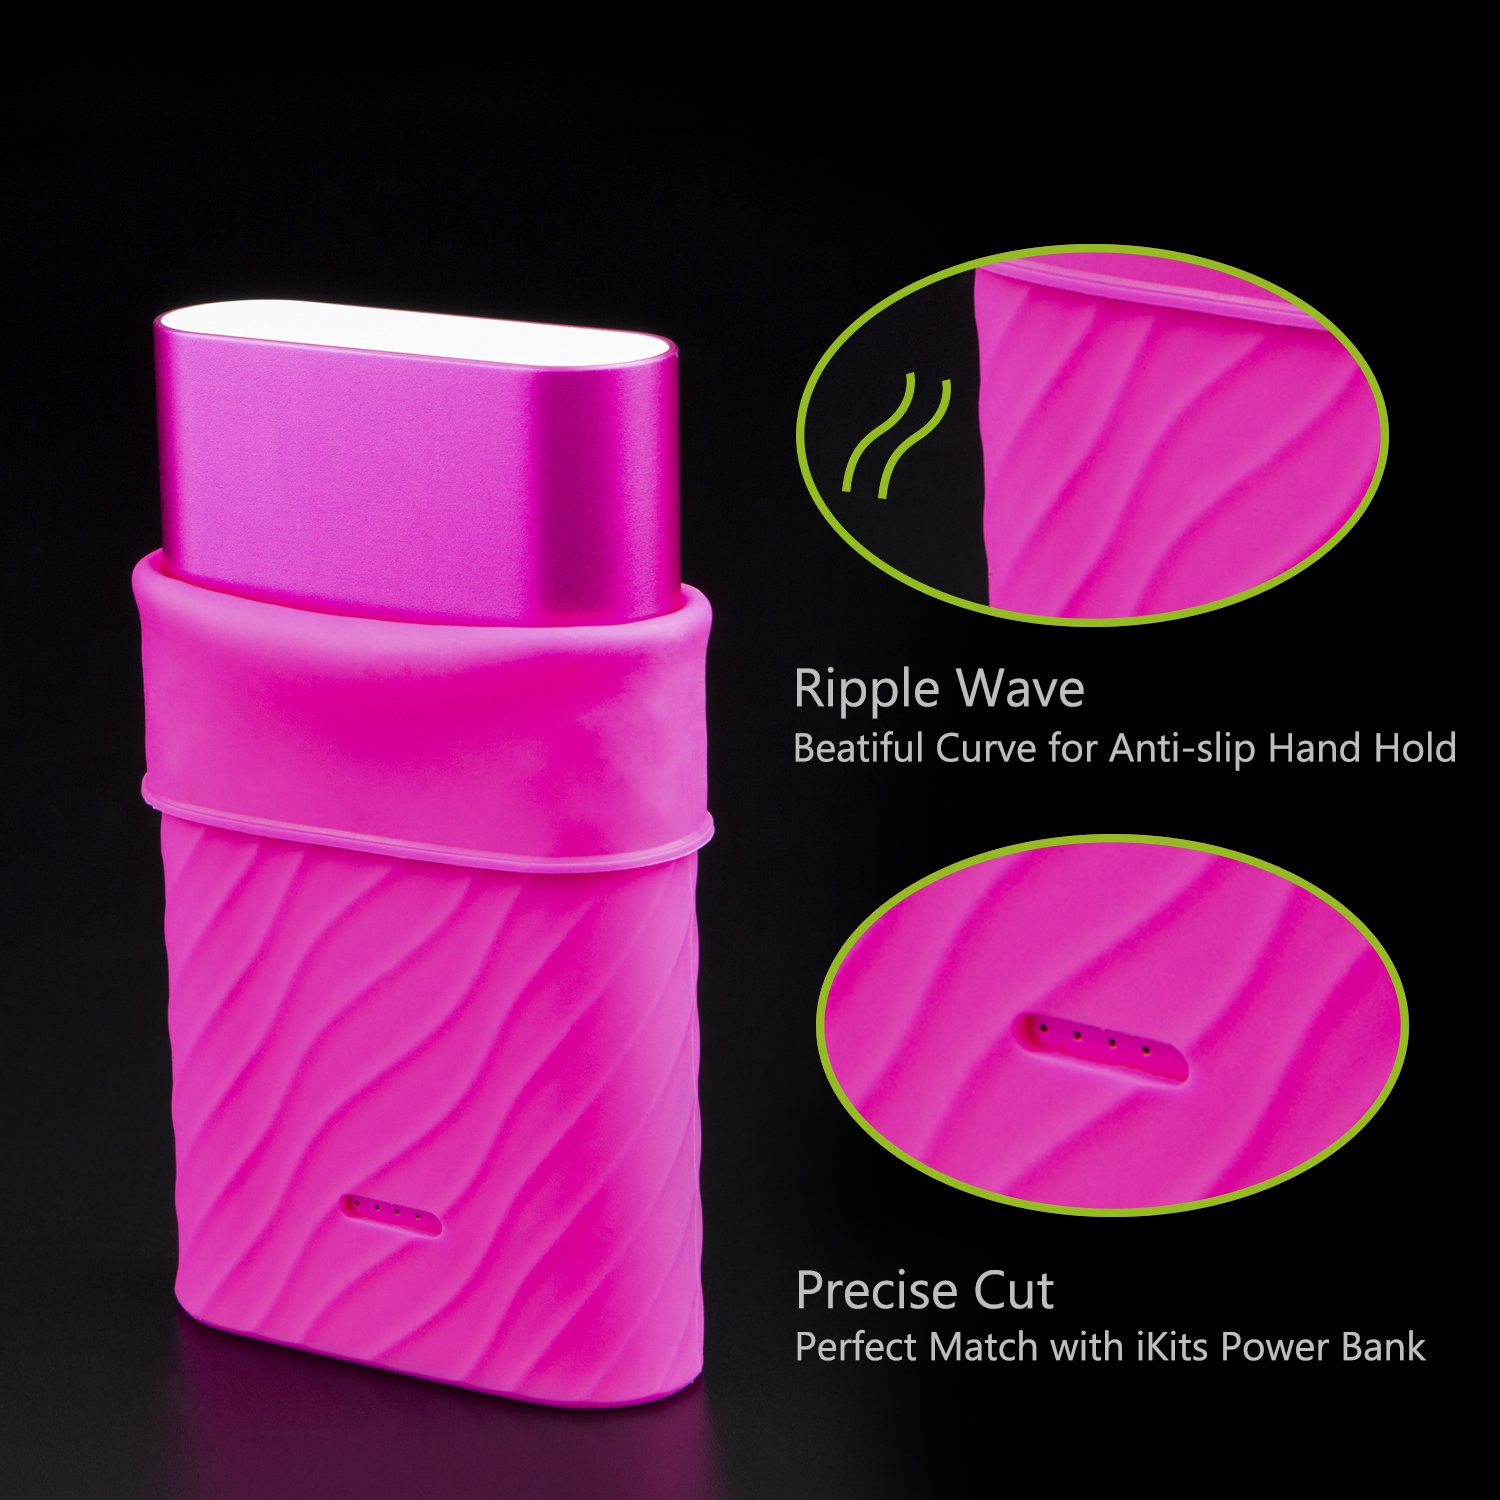 iKits Protective Case 10200mAh Portable Charger, Fast Charge Power Bank Silicone Case, Ripple Wave Design, Precise LED Lights Cut, Colorful Choices for 10000mAh Batter Pack (Rose Red) by iKits (Image #4)